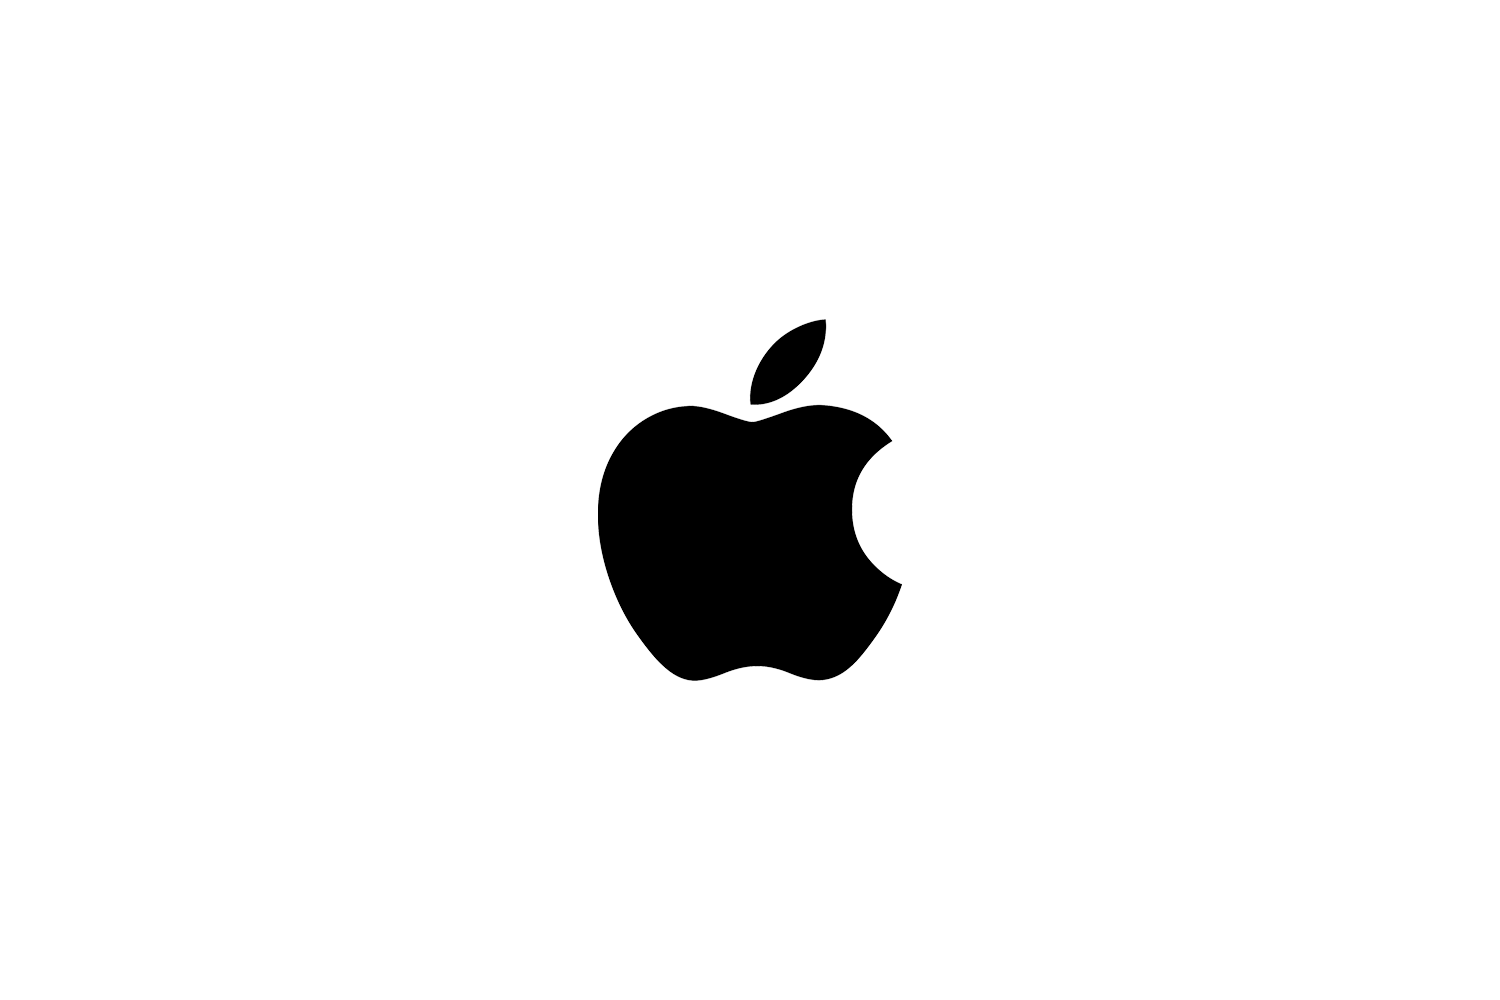 Russ Fry - Apple-Logo